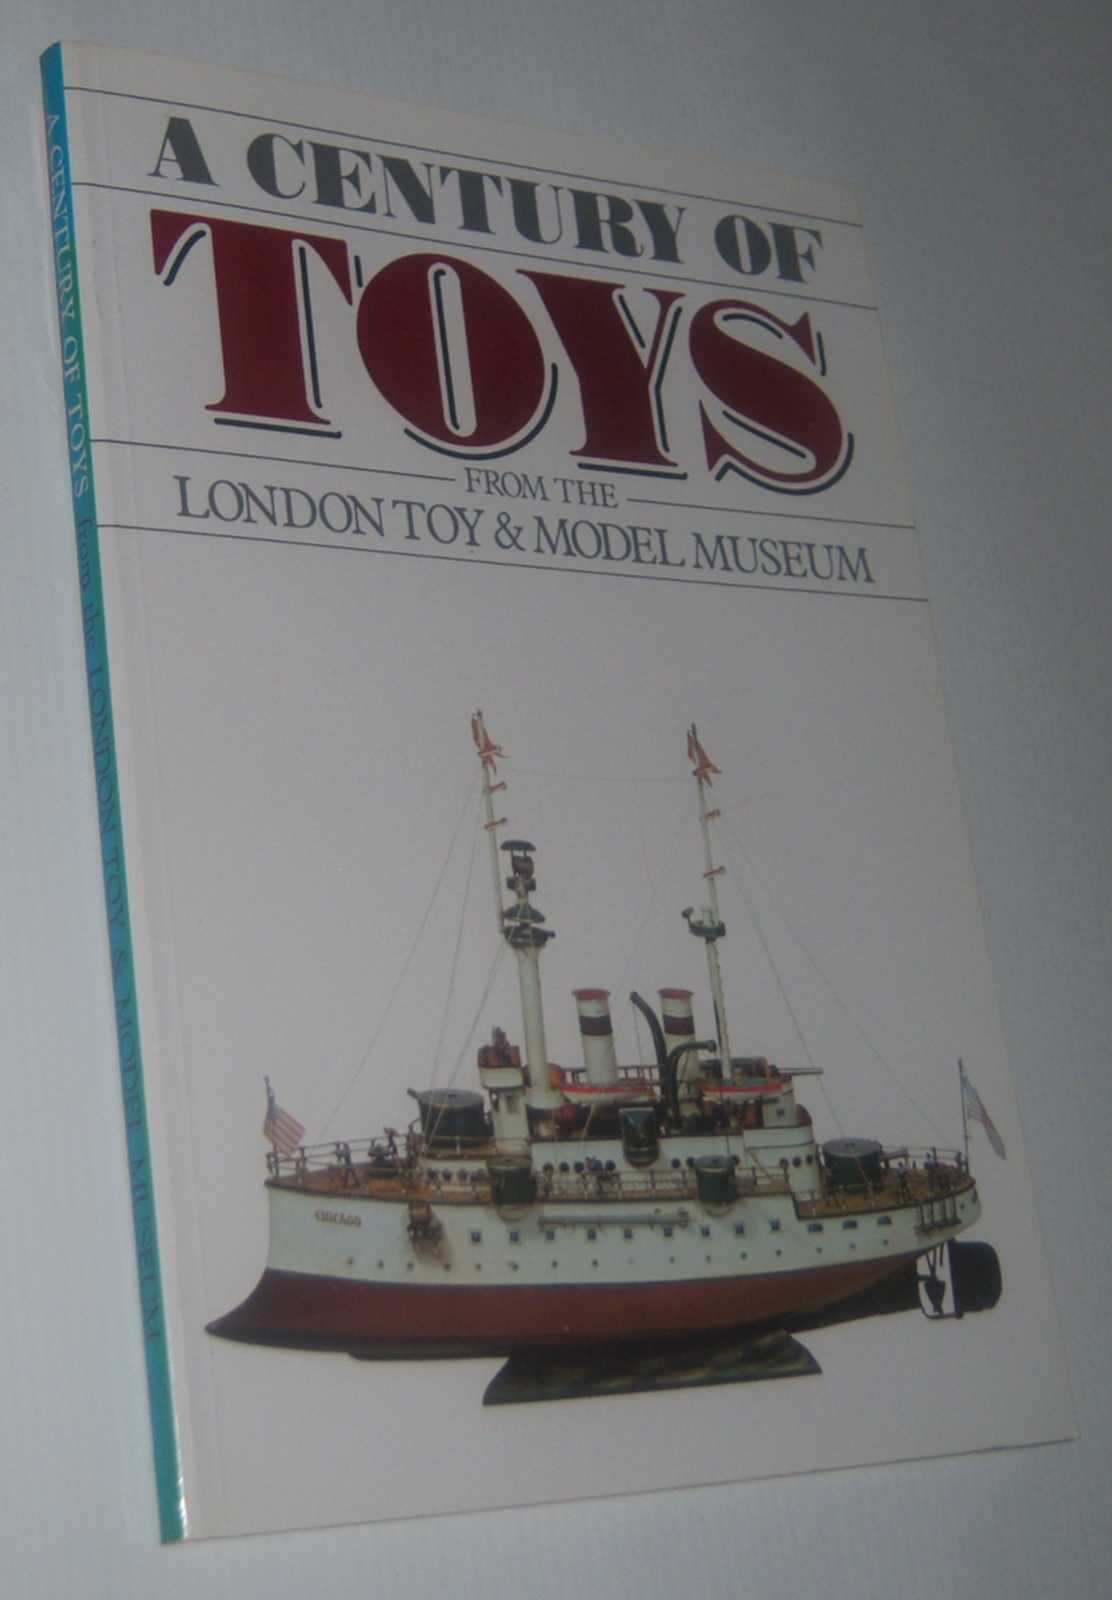 Image for A CENTURY OF TOYS FROM THE LONDON TOY AND MODEL MUSEUM (Exhibition Catalogue)